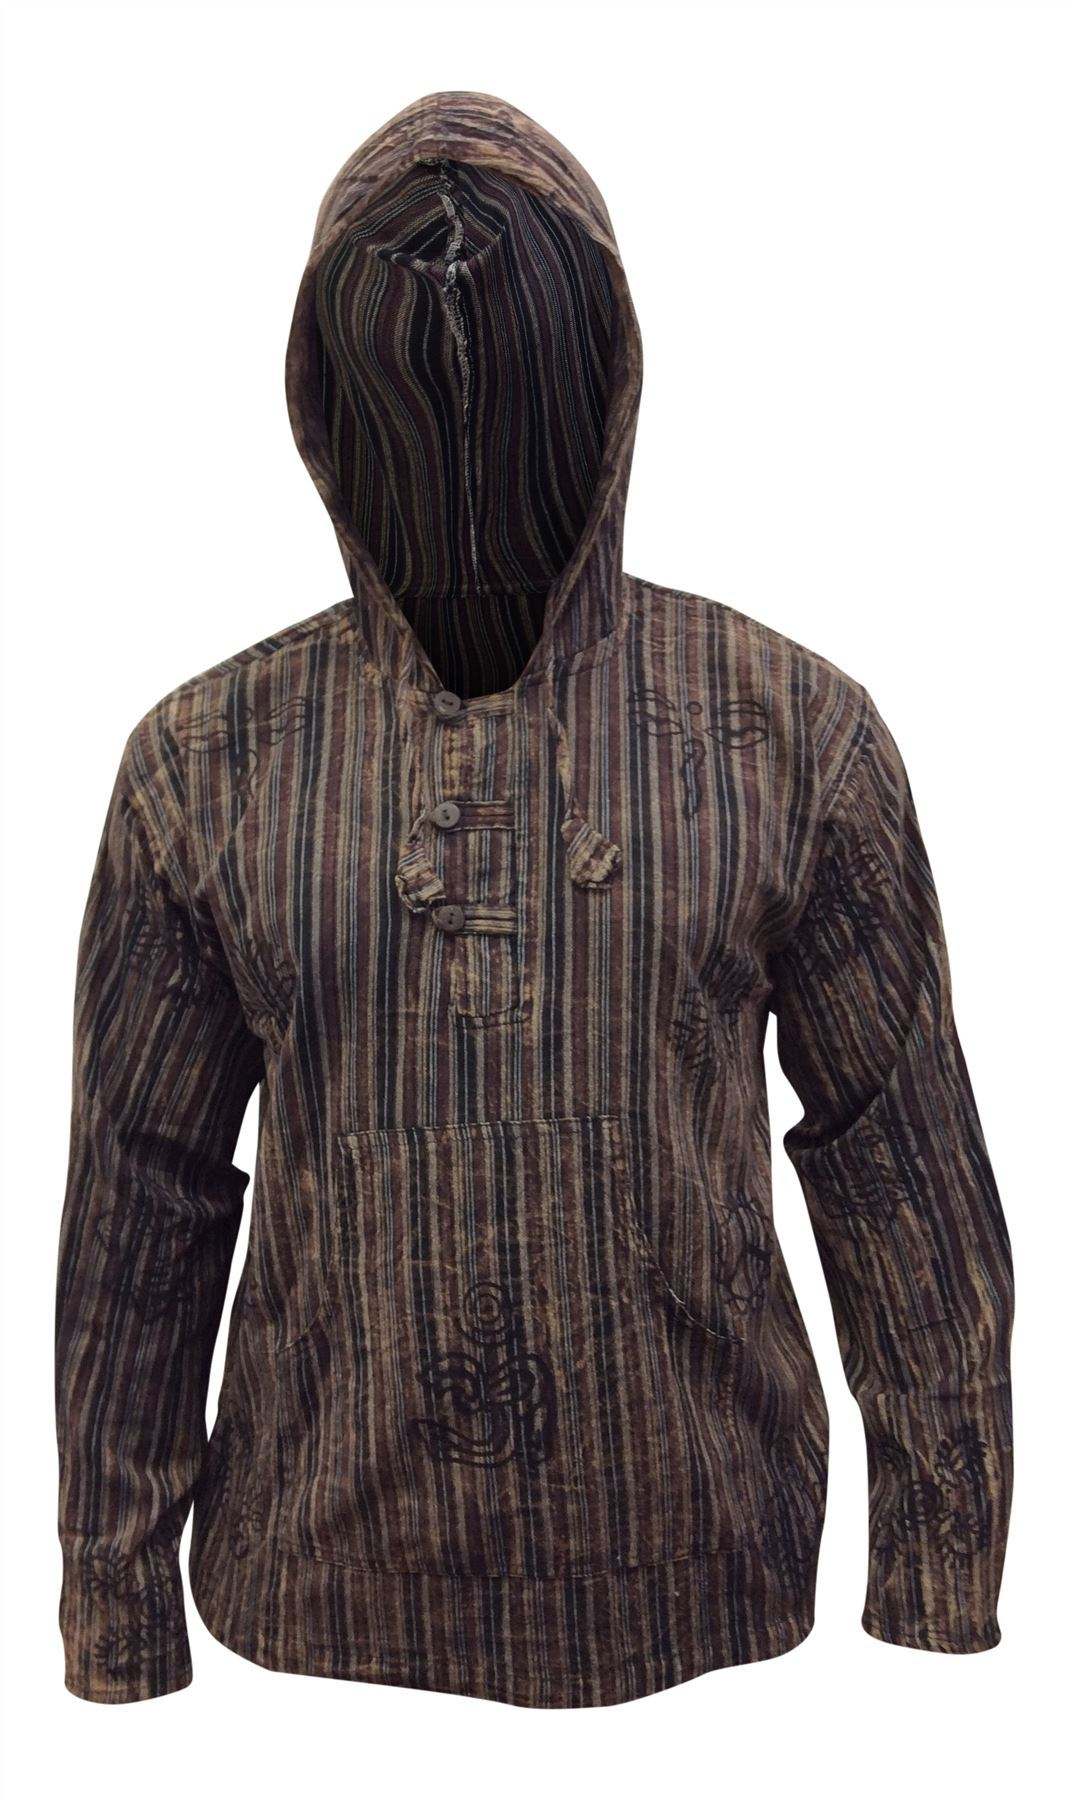 Mens-Stonewashed-Striped-Hooded-Grandad-Shirt-Long-Sleeve-Casual-Hooded-Top thumbnail 9